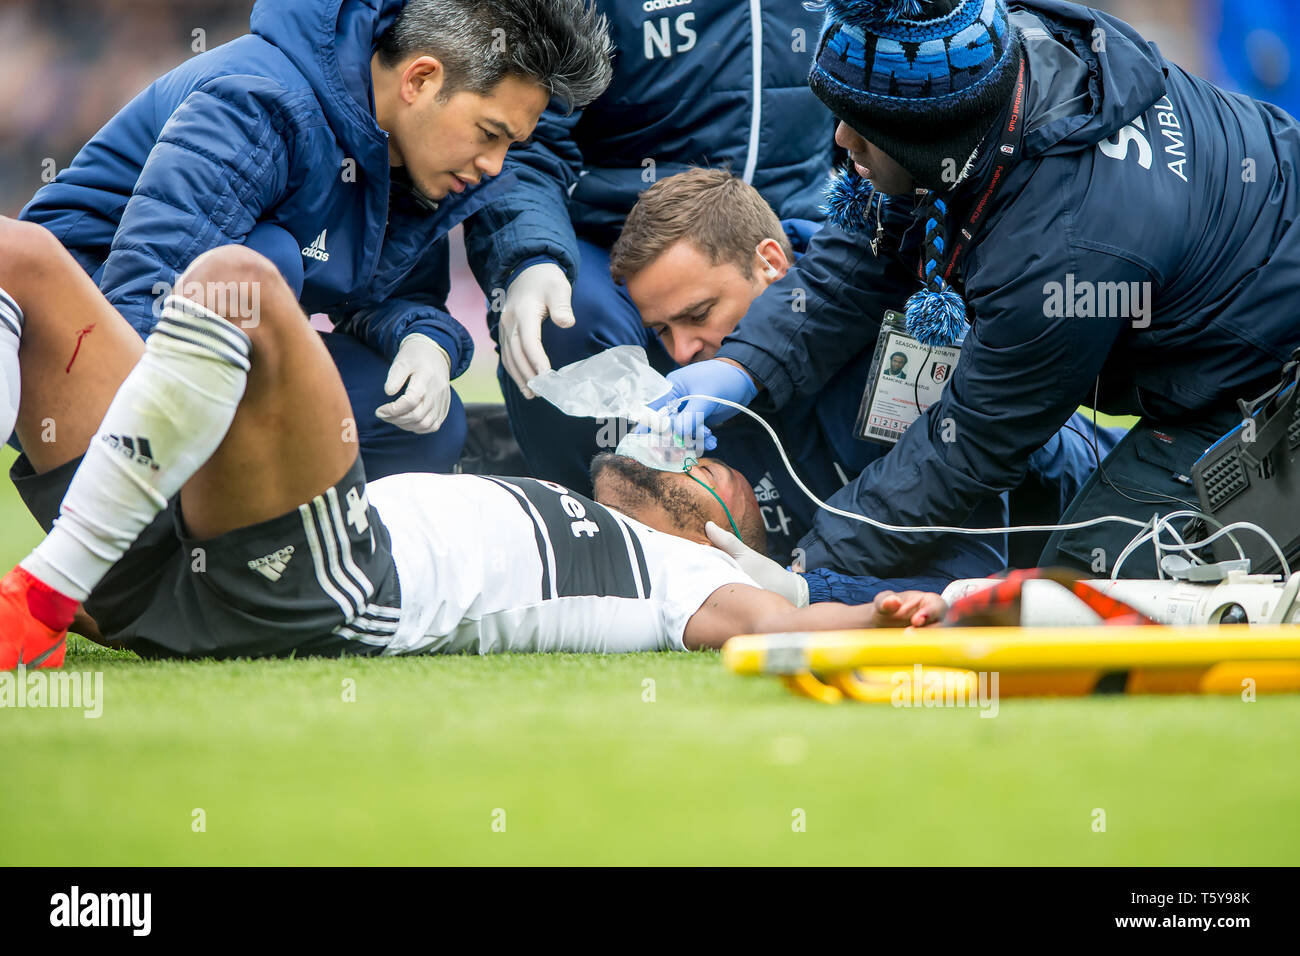 Craven Cottage, London, England, UK. 27th April 2019.  Denis Odoi of Fulham lies on the ground with blood on his face with an oxygen mask and receives medical attention during the Premier League match between Fulham and Cardiff City at Craven Cottage, London, England on 27 April 2019. Photo by Salvio Calabrese.  Editorial use only, license required for commercial use. No use in betting, games or a single club/league/player publications. - Stock Image